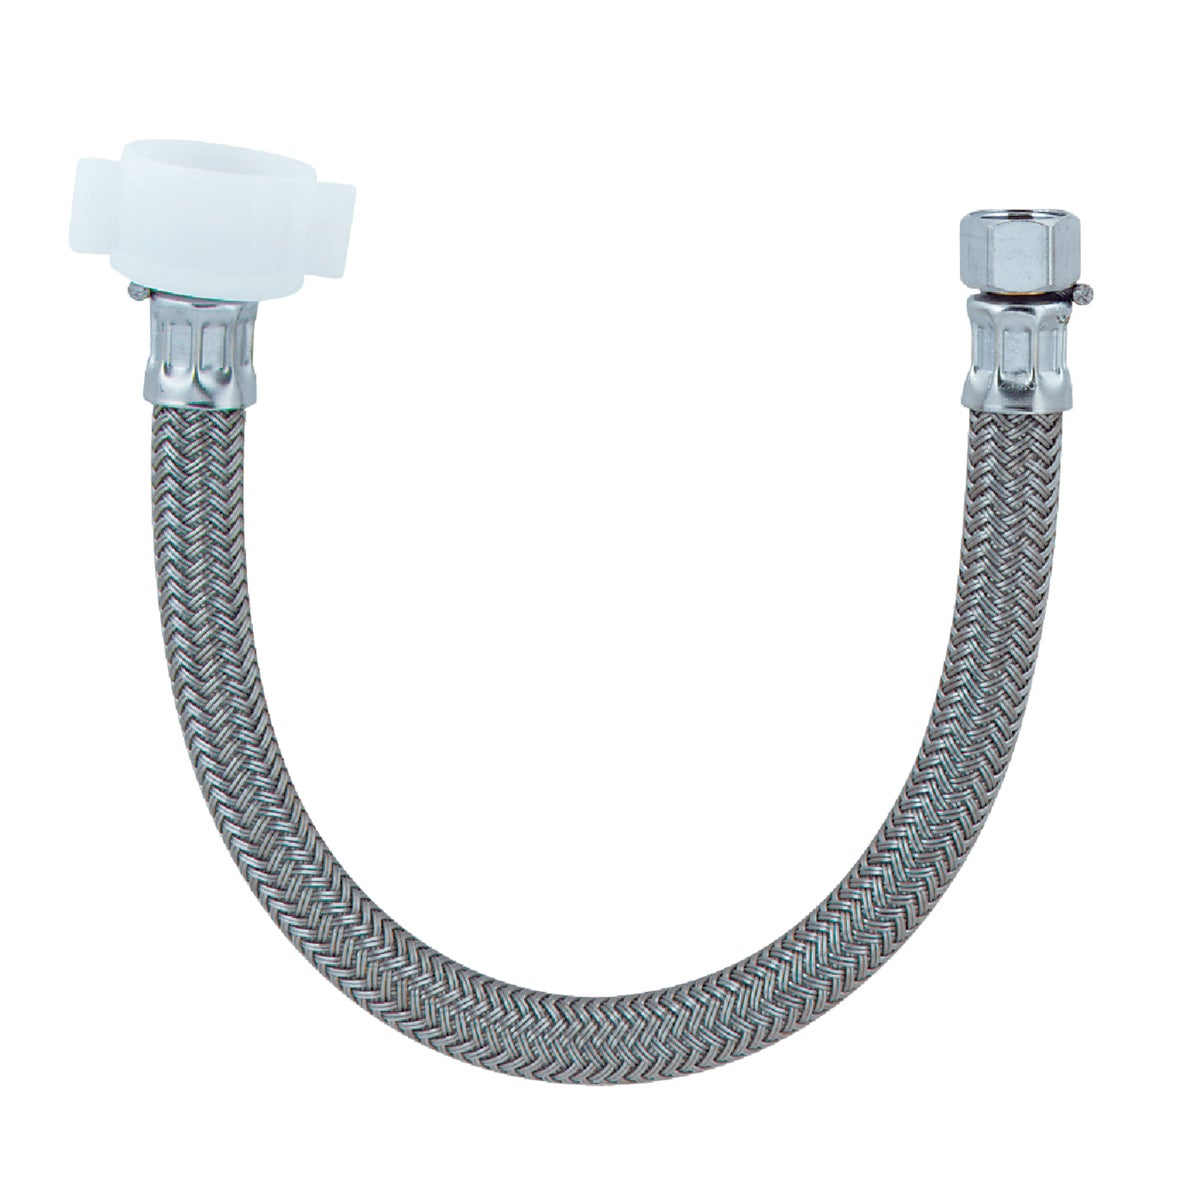 "12"" TOILET CONNECTOR - PSB856 by Brass Craft"